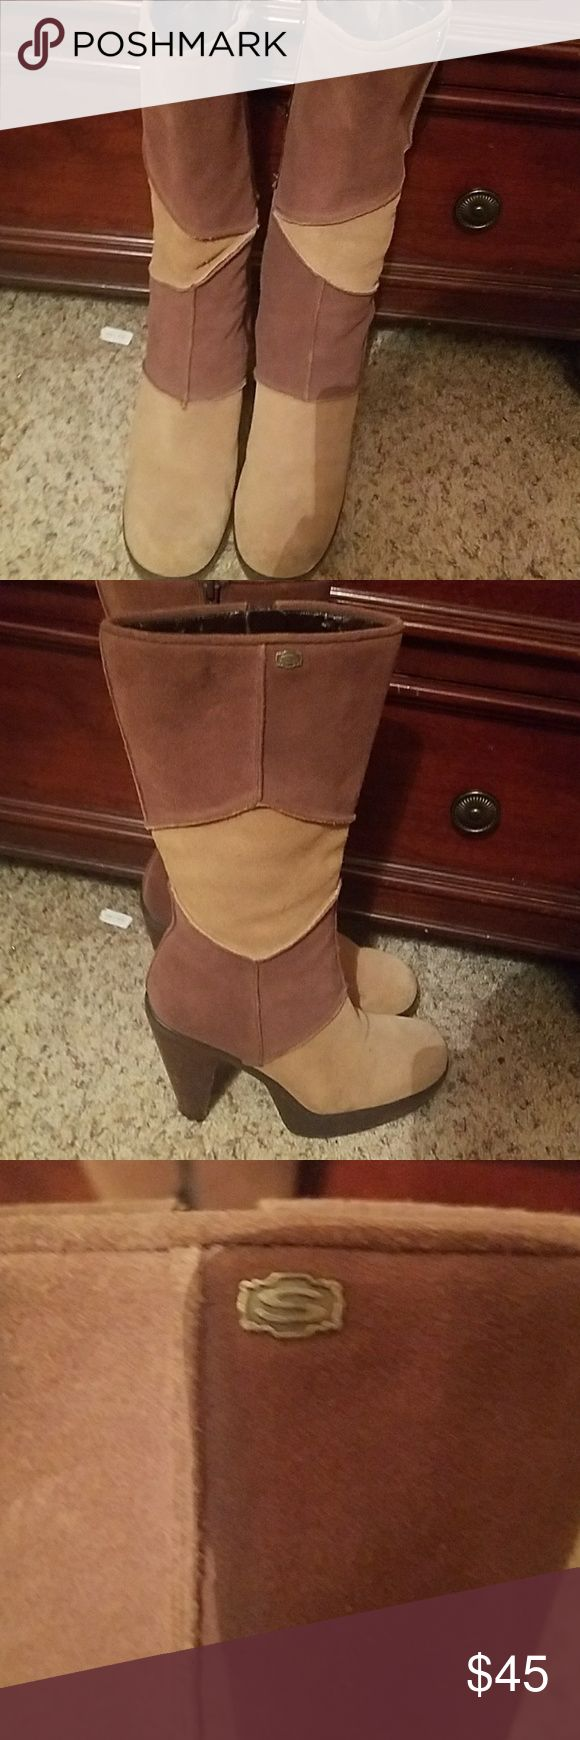 "Adorable brown & tan Sketcher boots. These are super cute, and in excellent condition. They are Brown & tan Sketcher boots, suede, & have 3.5"" hills. Skechers Shoes Heeled Boots"